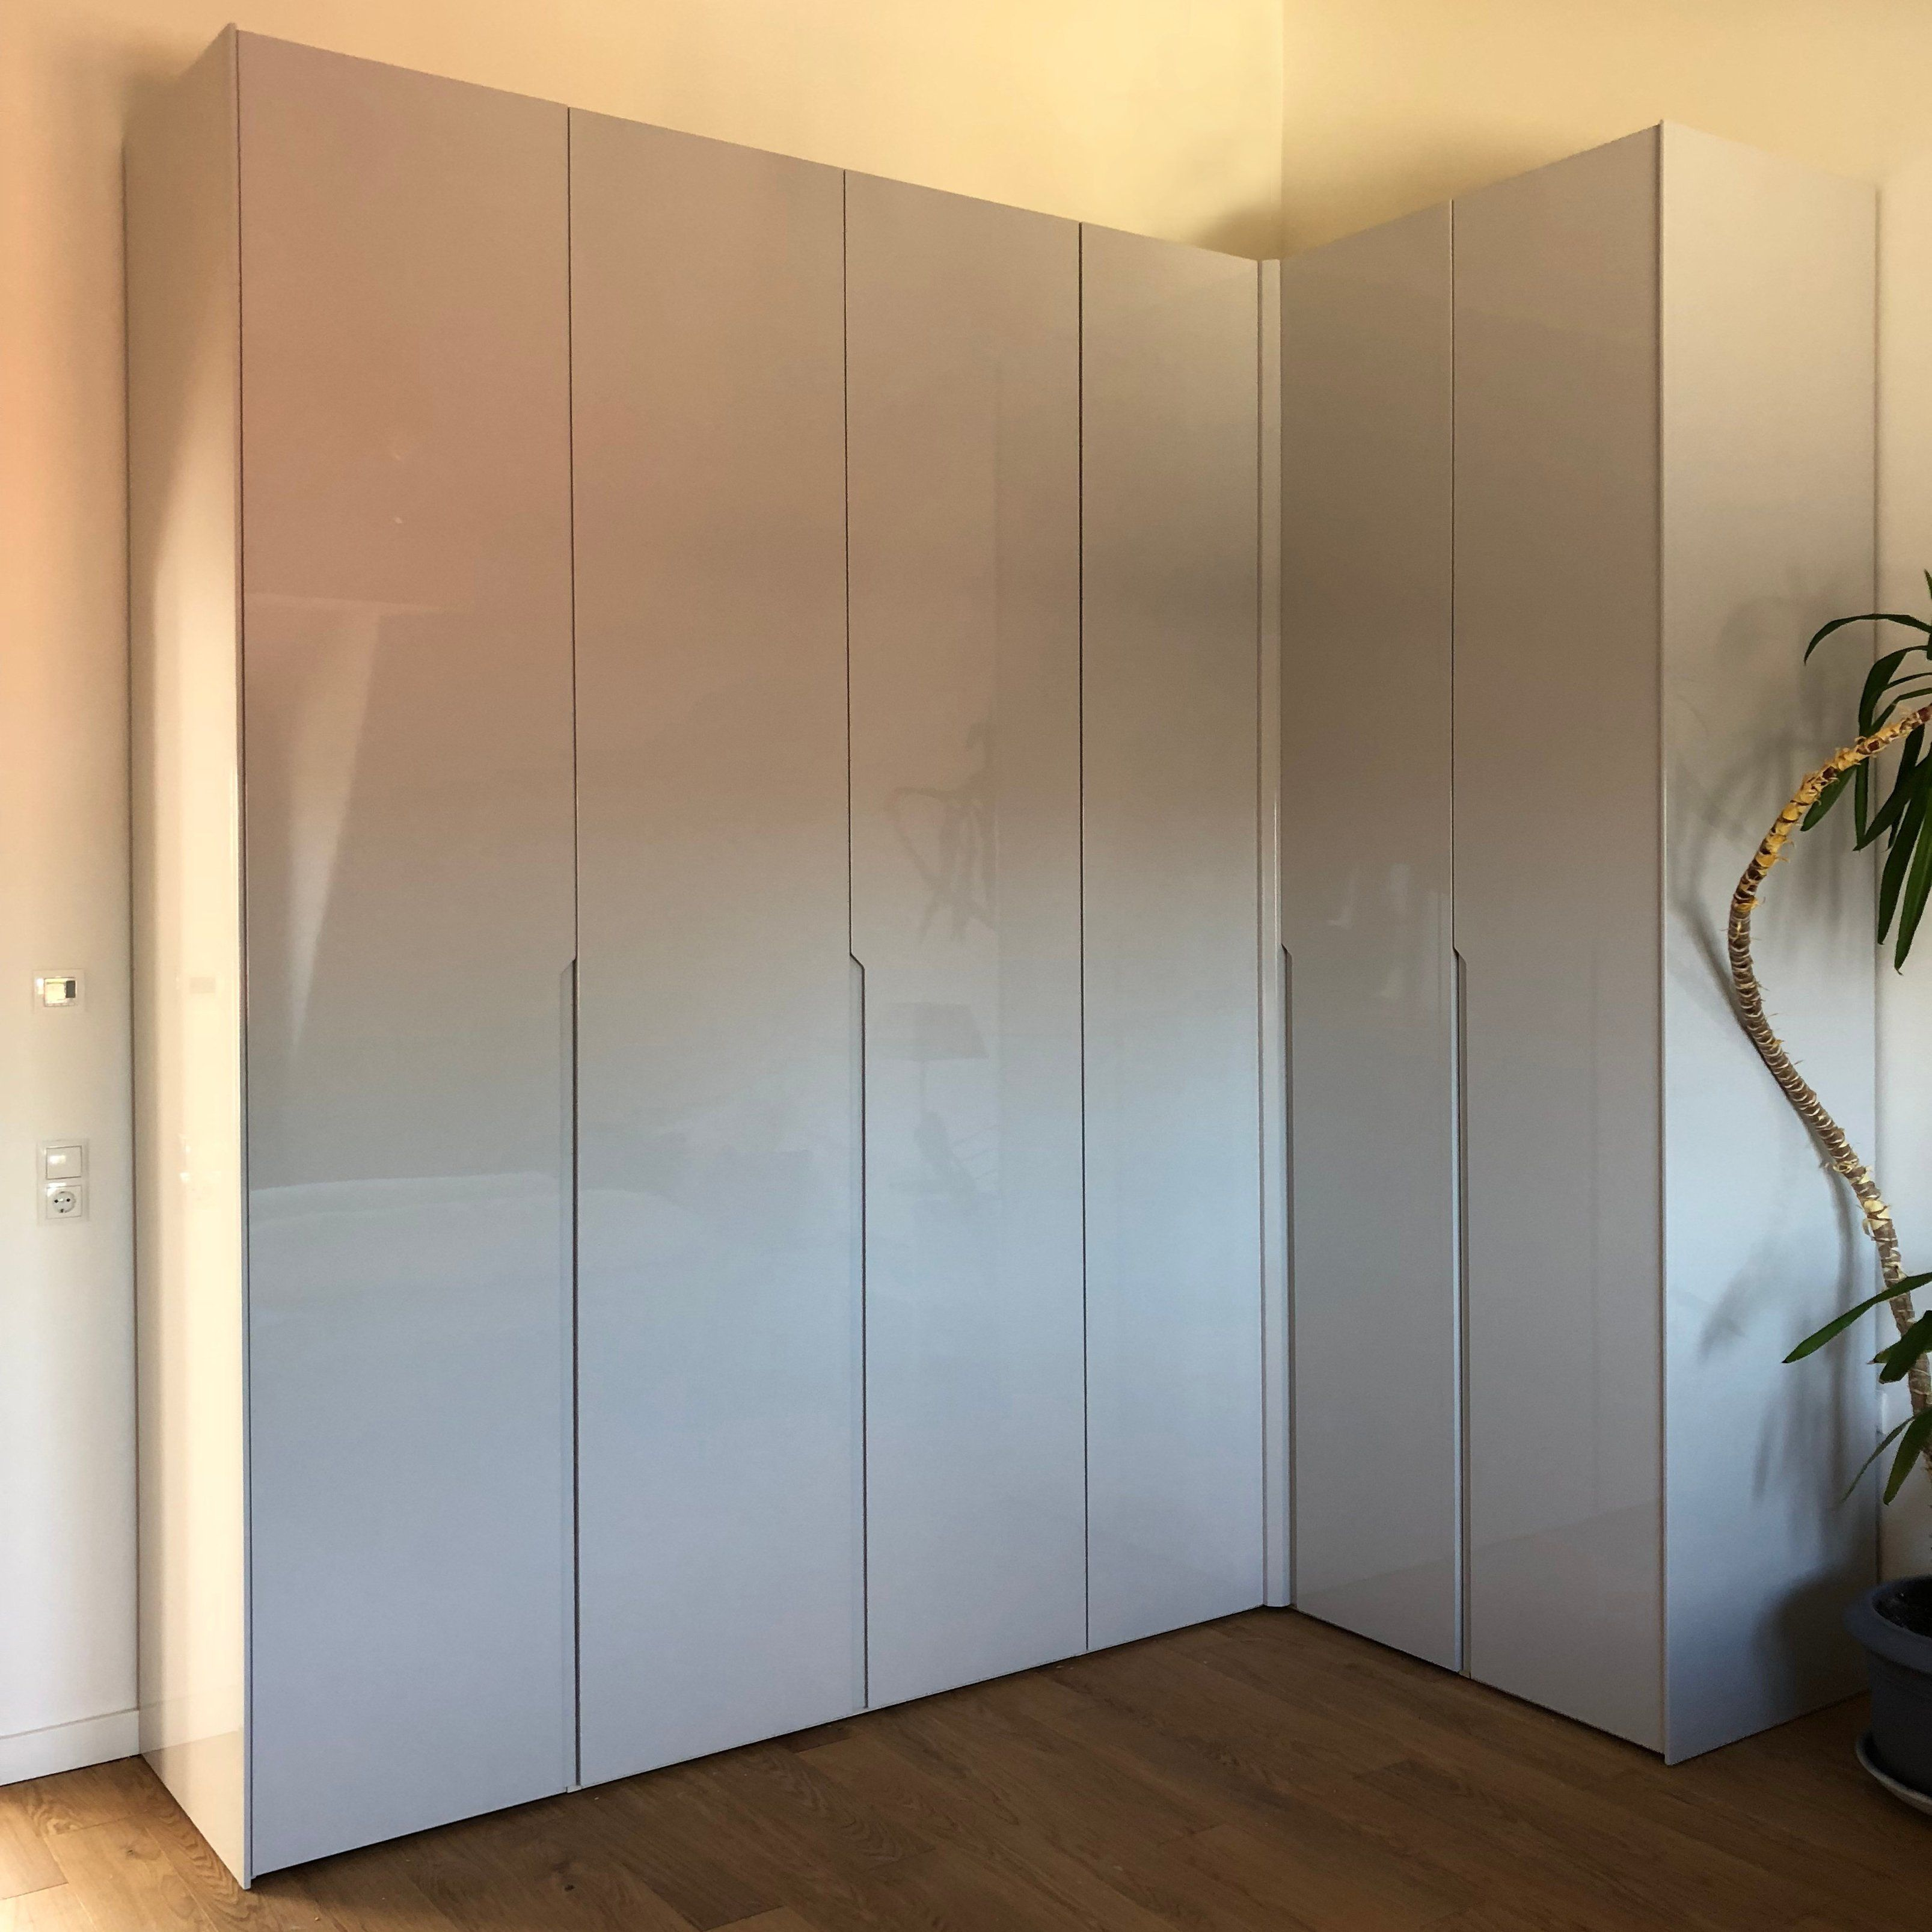 Schrank Nach Mass In 2020 Bars For Home Custom Sideboard Storage Spaces